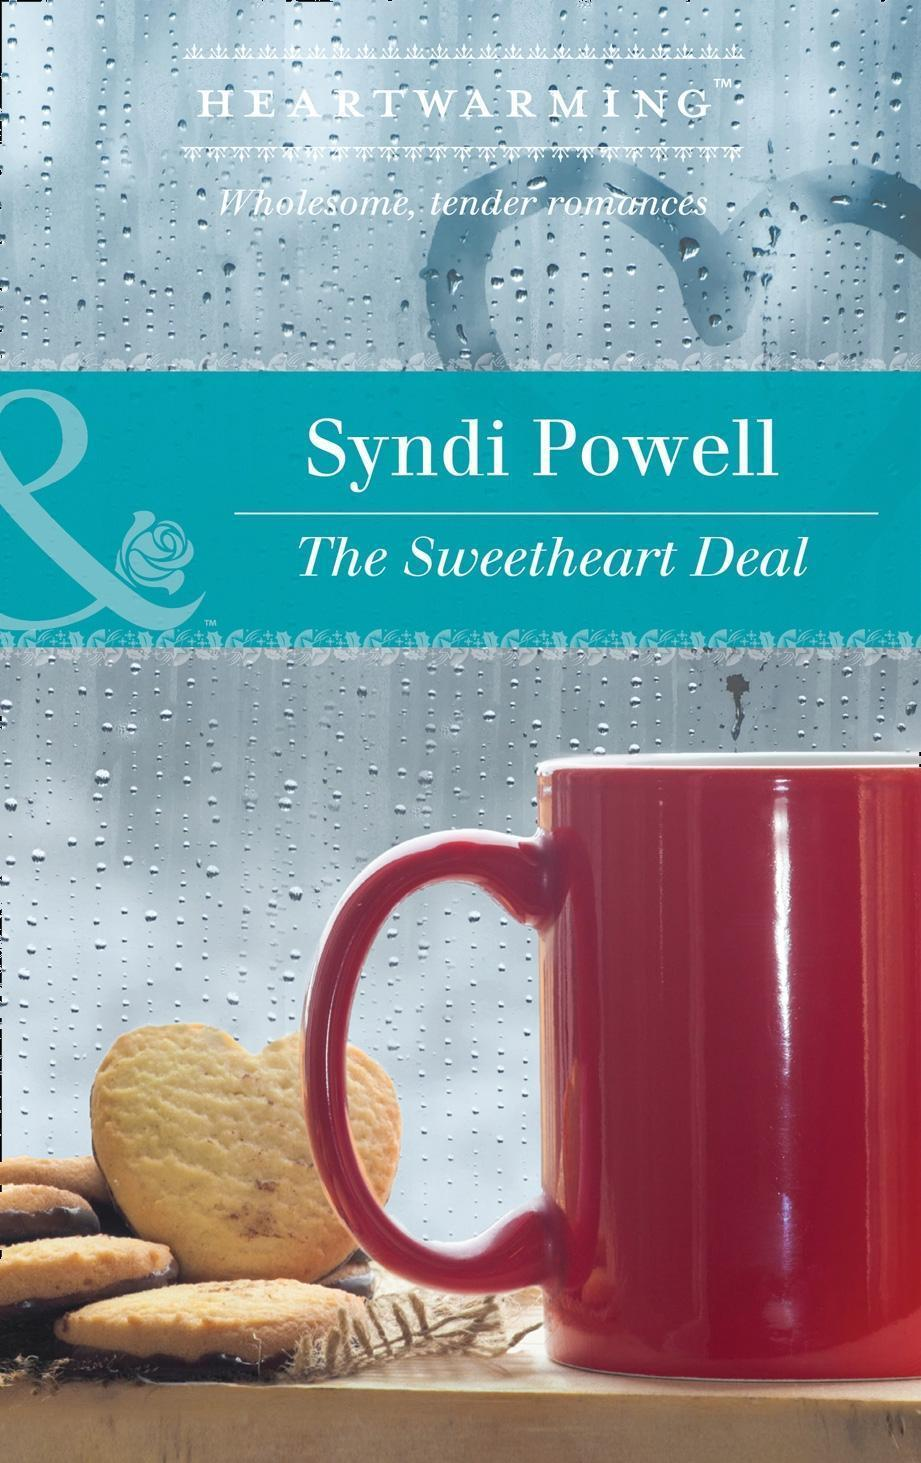 The Sweetheart Deal (Mills & Boon Heartwarming)